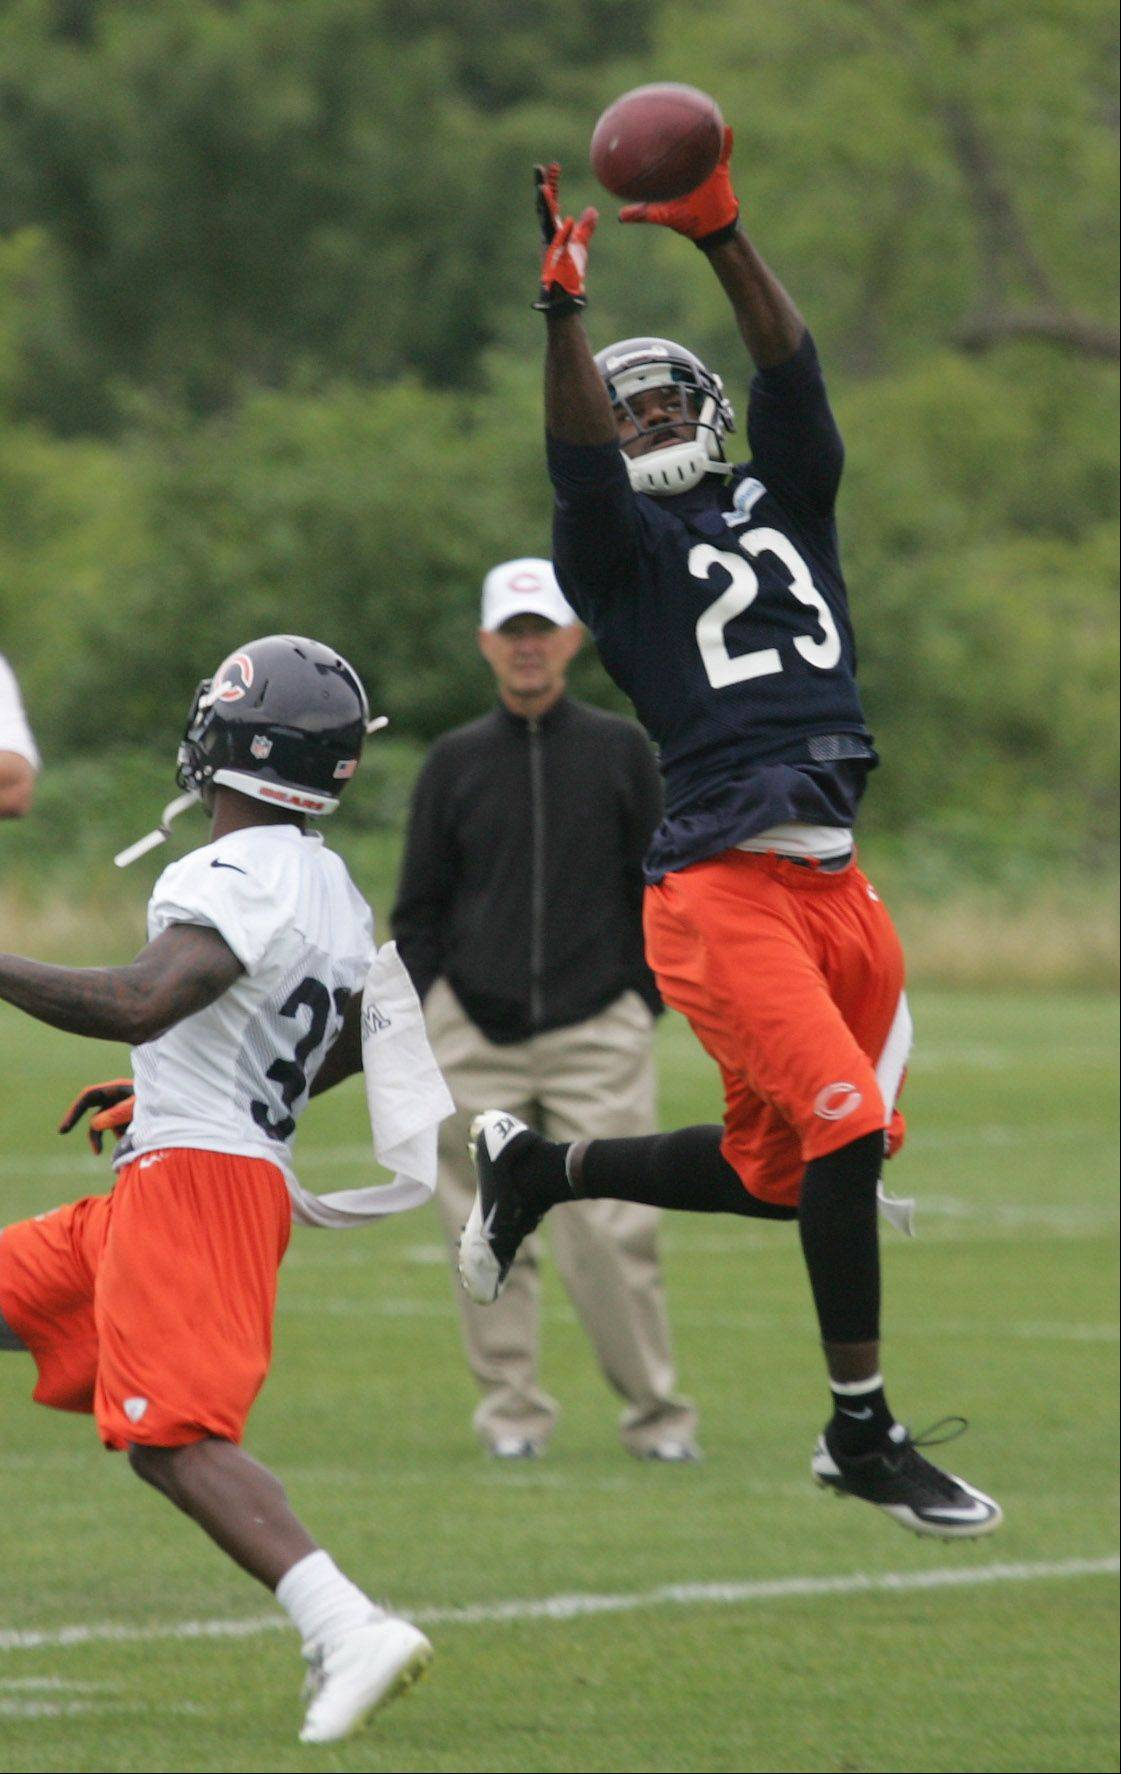 Wide receiver Devin Hester goes up for an acrobatic catch during the Chicago Bears minicamp Wednesday at Halas Hall in Lake Forest. Hester is still expected to play a significant role on special teams as a returner.